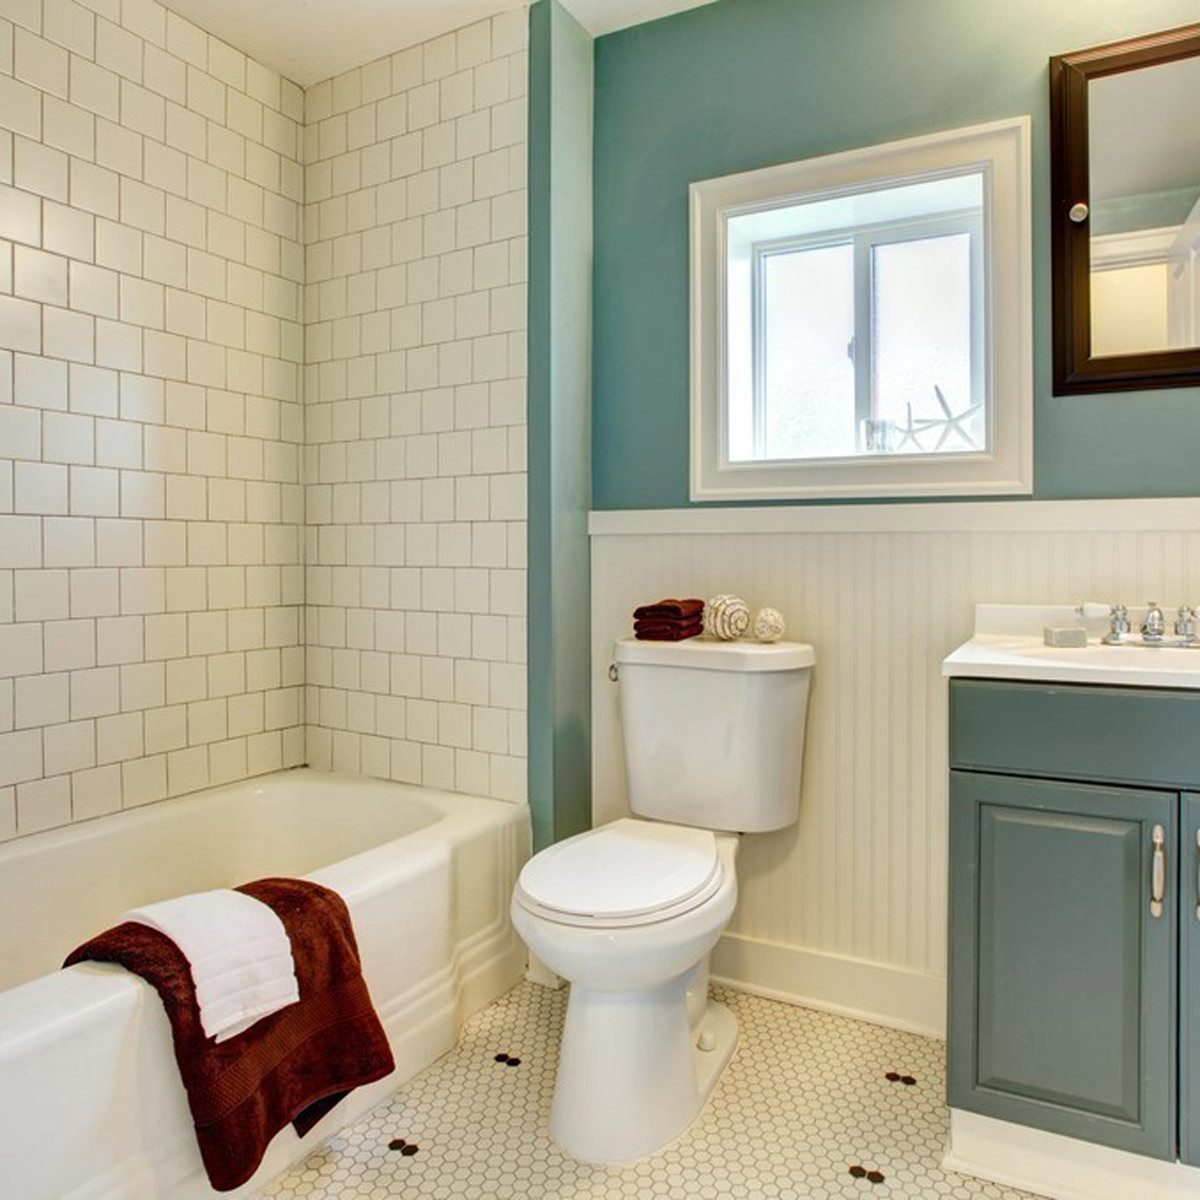 Bathroom 13 Tile Tips For Better Bathroom Tile The Family Handyman